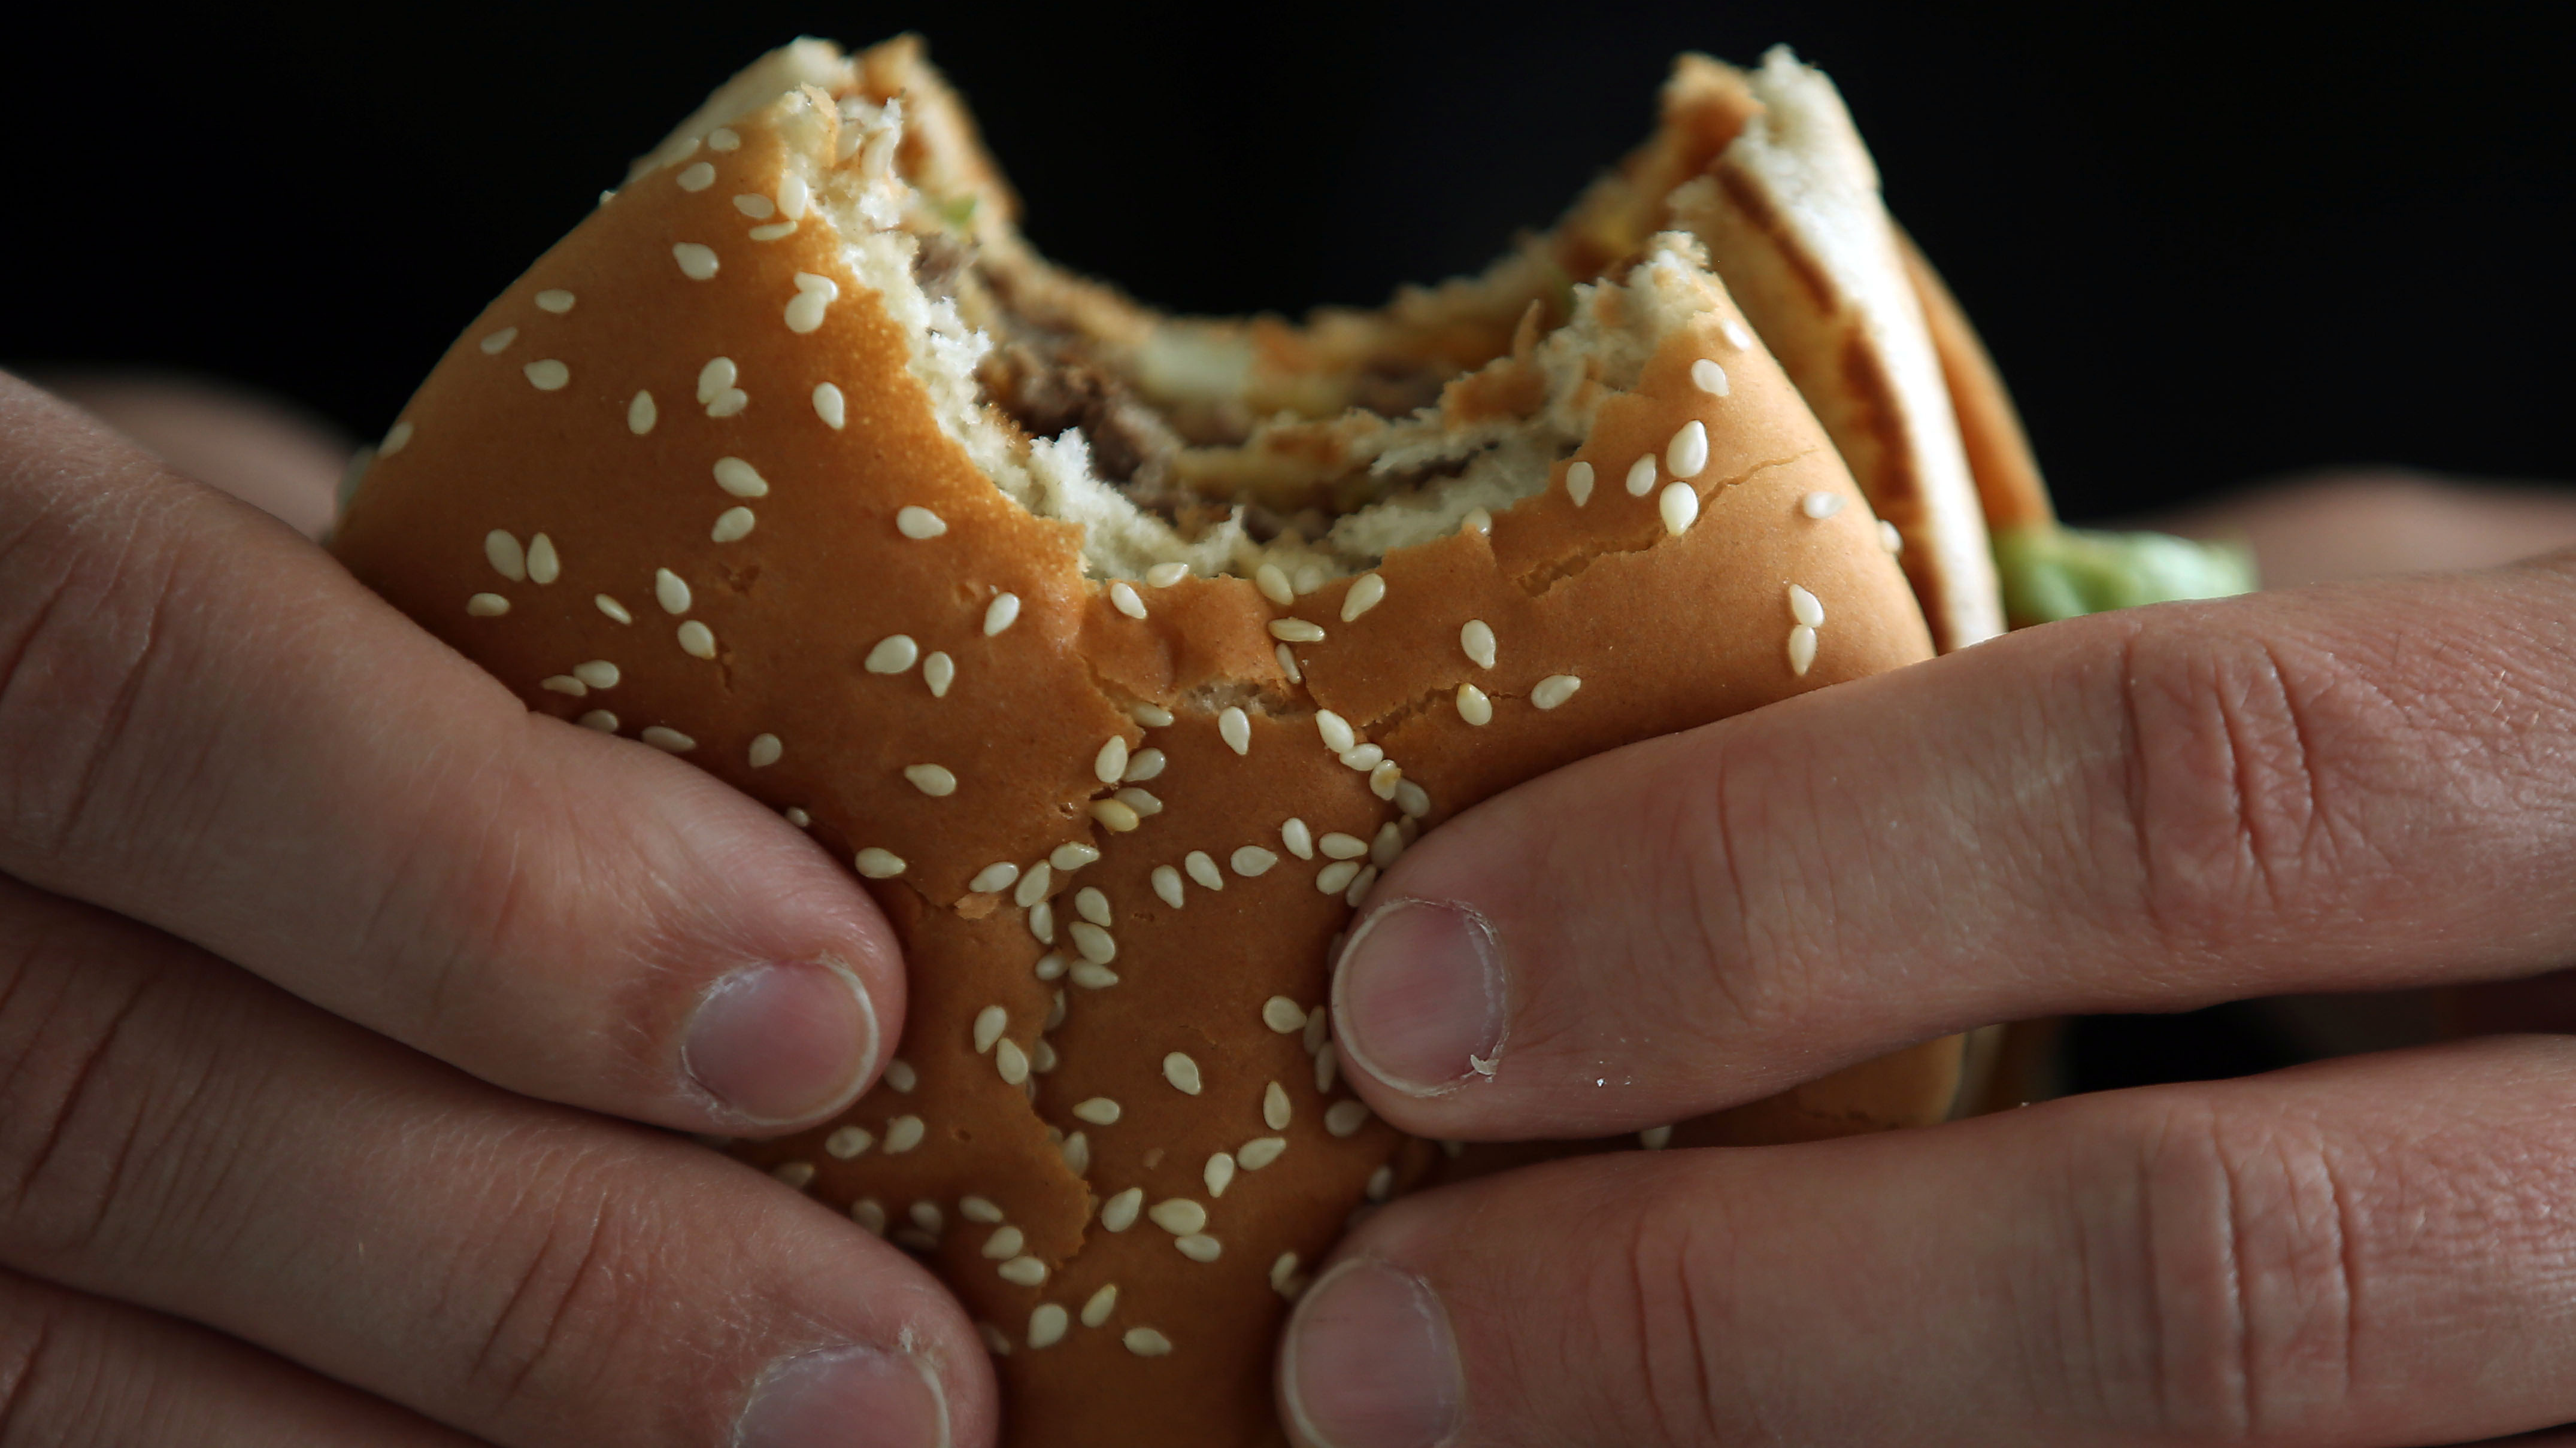 People Around The World Are Trying To Make Their Own McDonald's